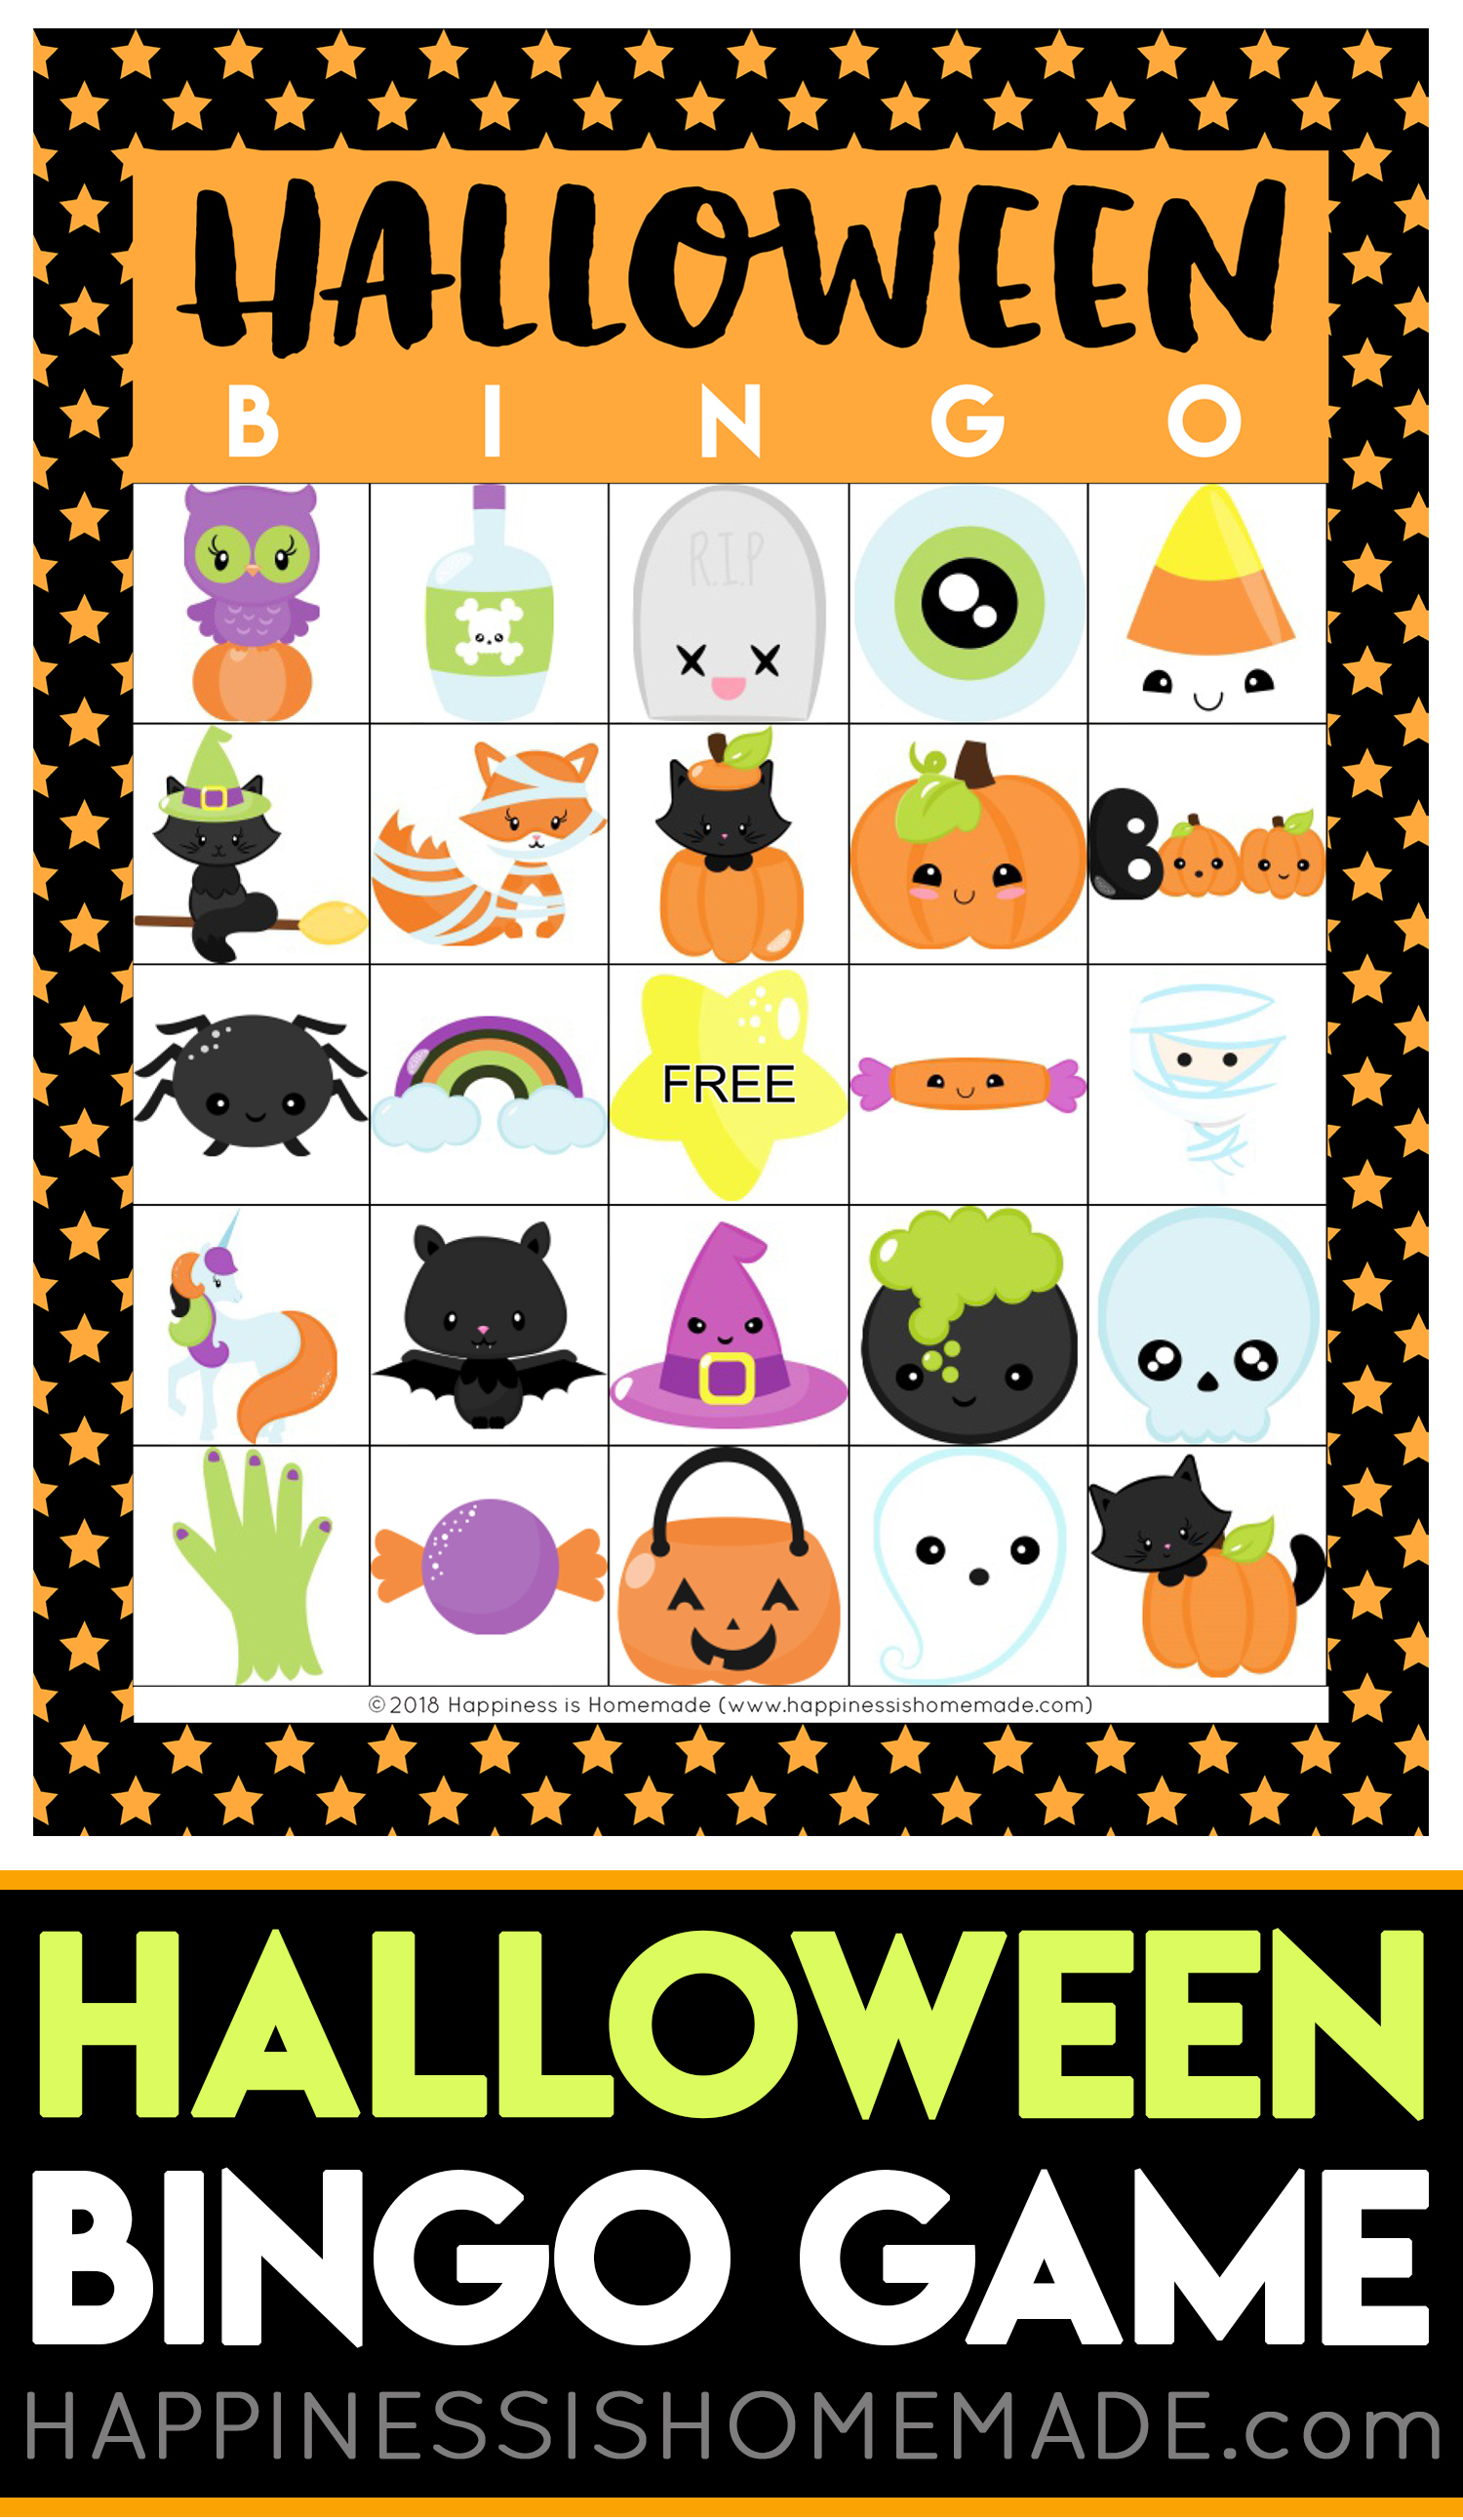 graphic regarding Halloween Bingo Printable referred to as Printable Halloween Bingo Playing cards - Contentment is Do-it-yourself